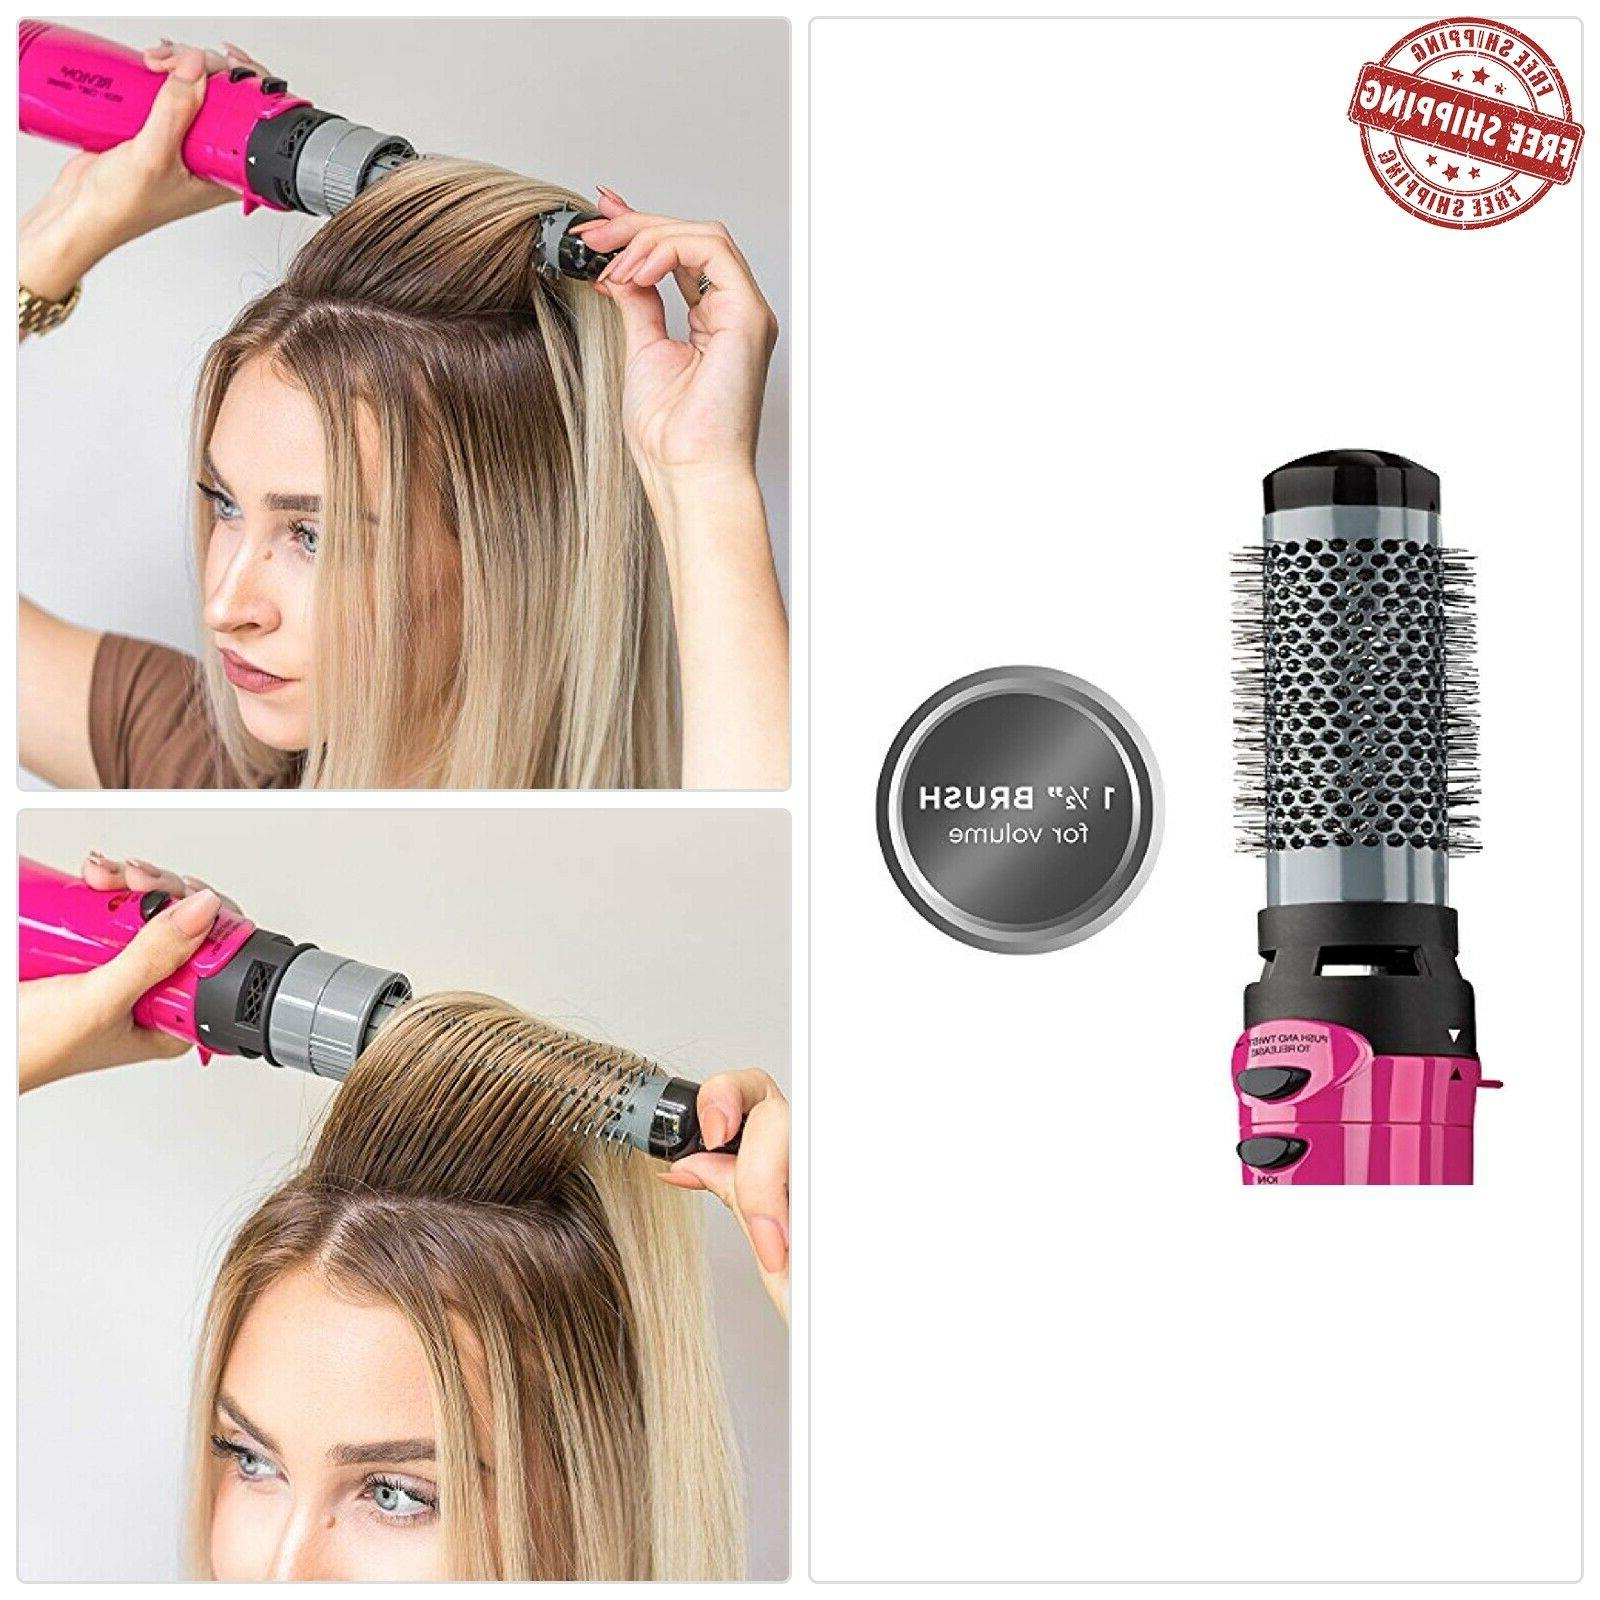 tools hair blow dryer style iron curling